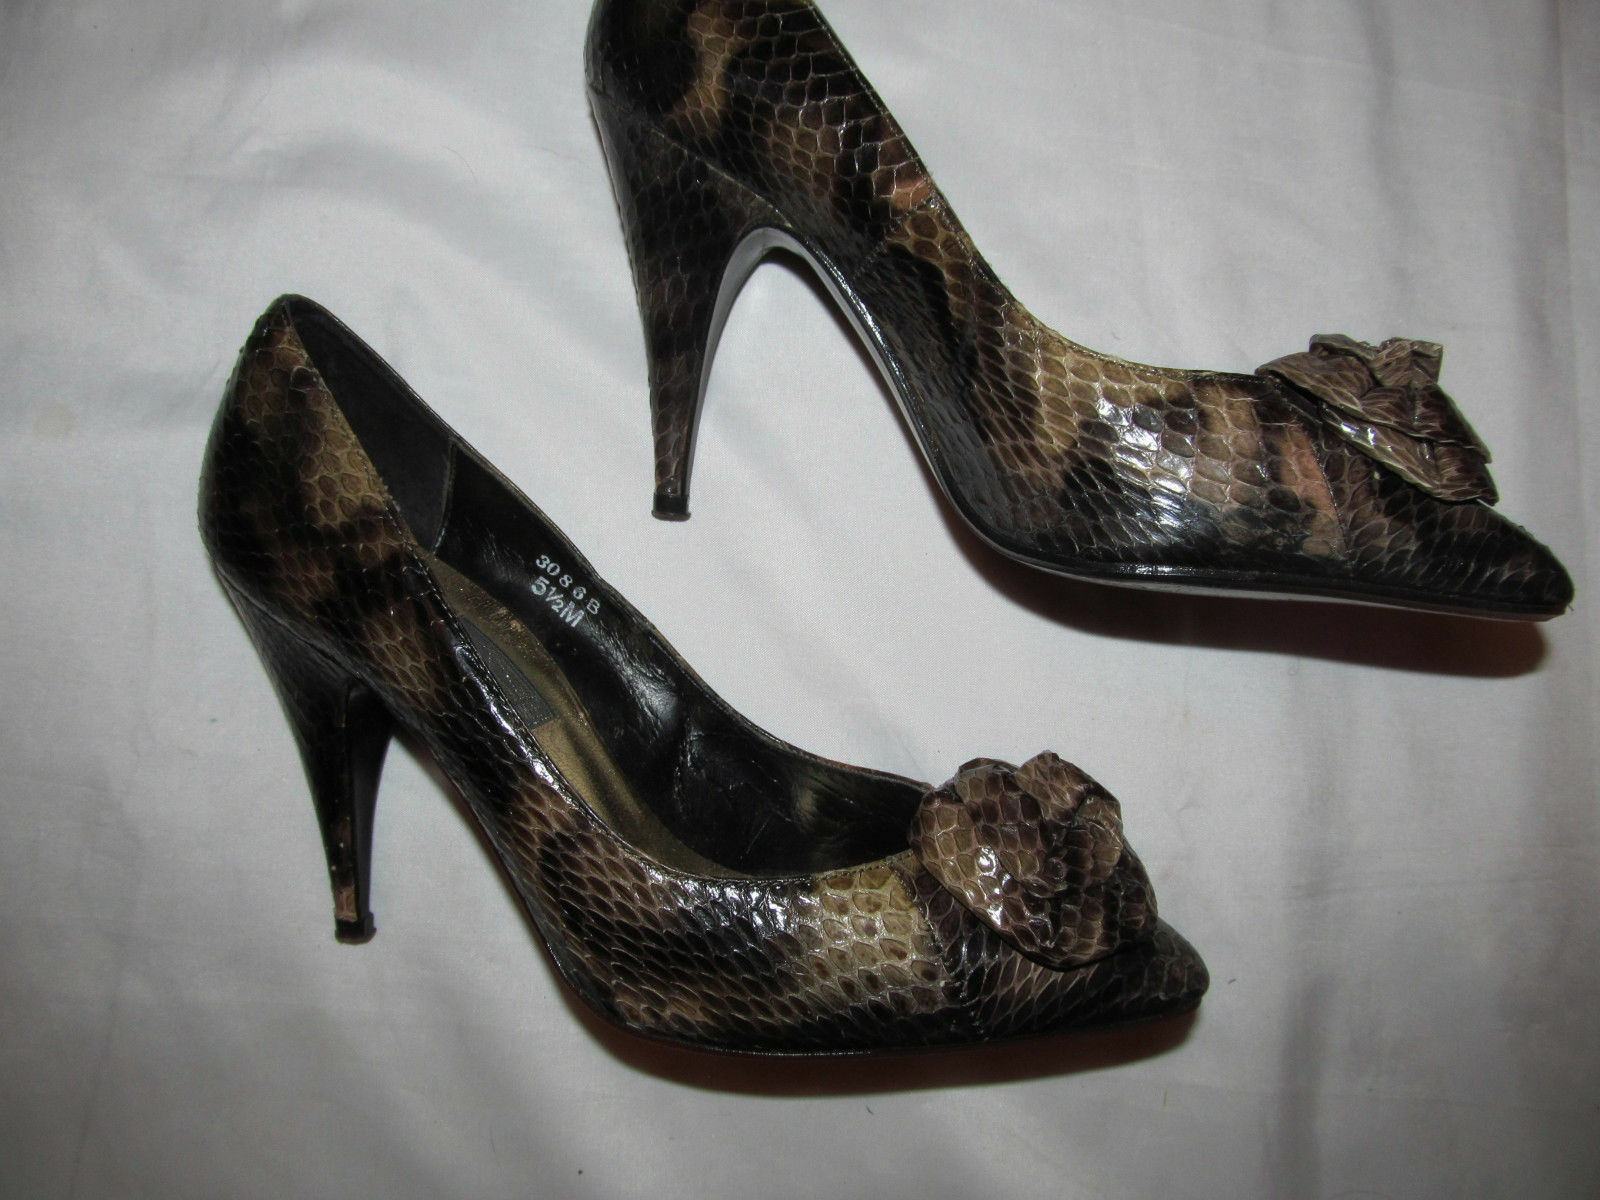 J RENEE snake python leather brown pumps pin up shoes with pinktte front 5.5 m